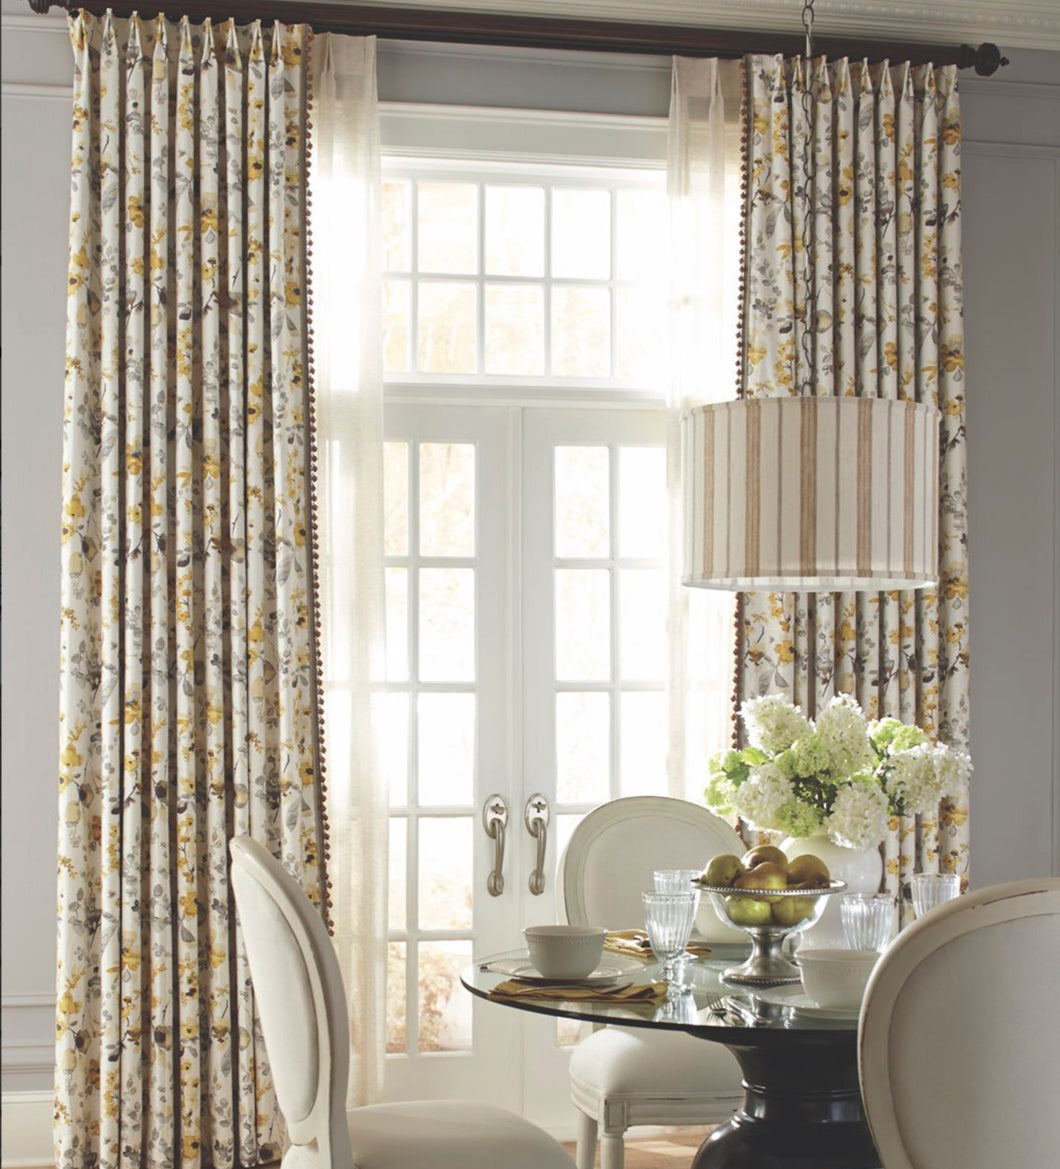 Modern farmhouse curtains grey floral curtains with yellow drapes curtains custom curtain panels grey curtains extra long curtains wide